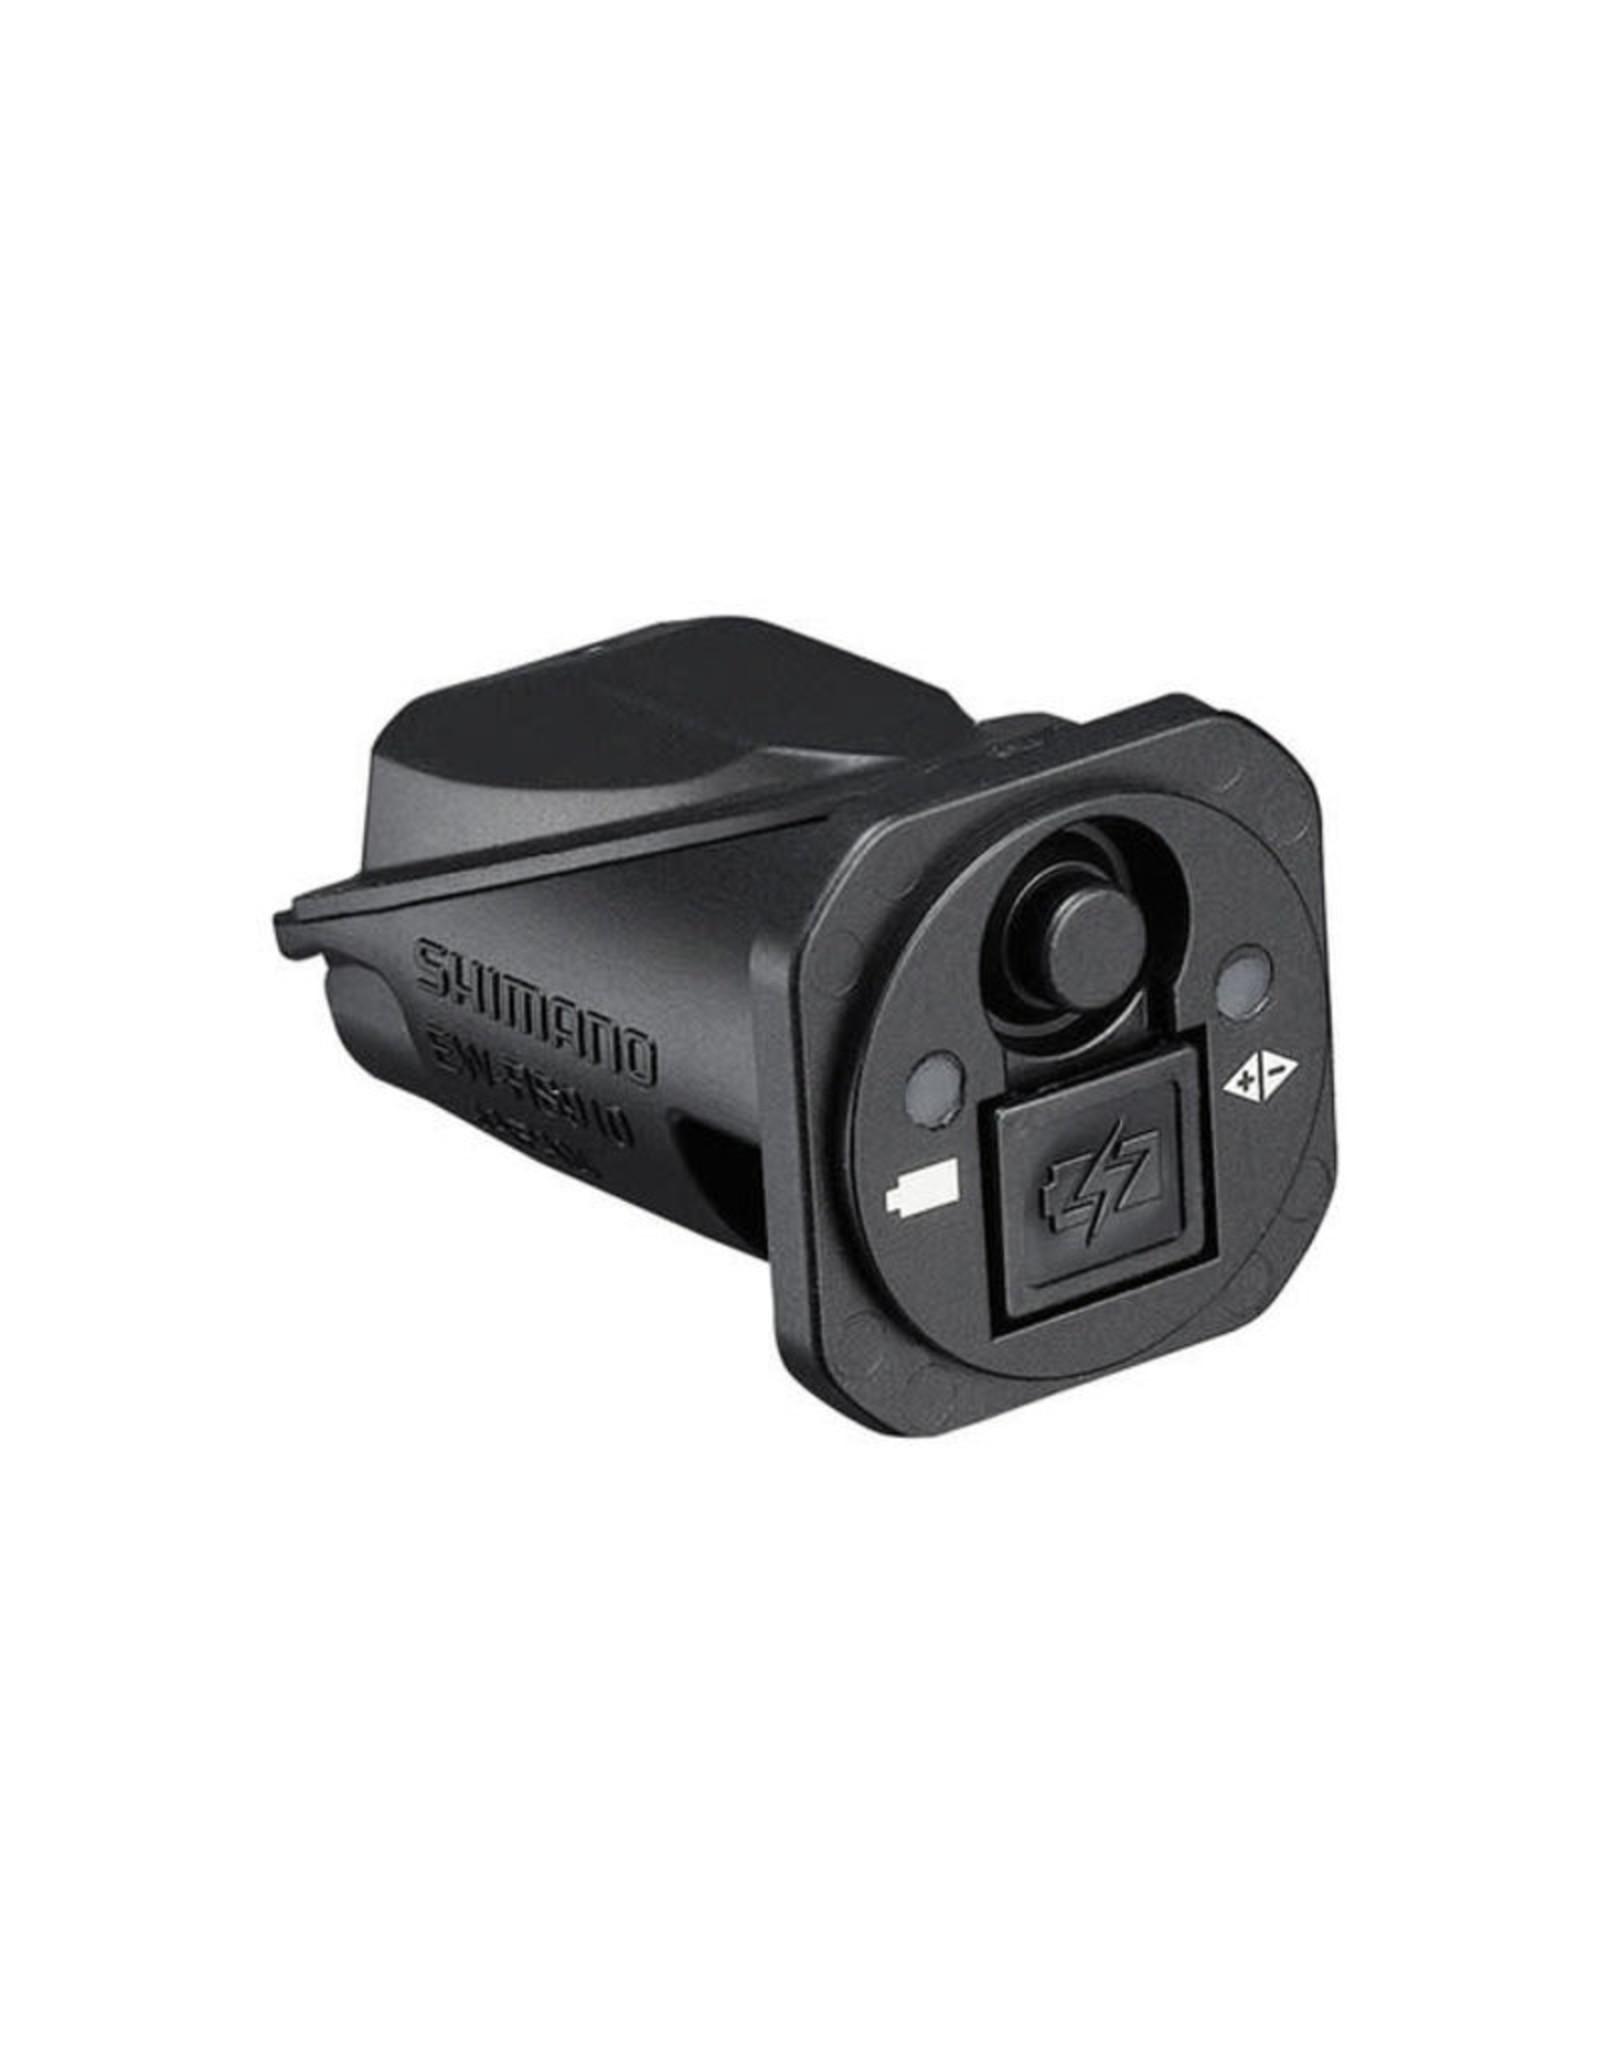 Shimano Shimano SW-RS910 Di2 Drop Handlebar/Internal Frame Junction Box, 2-Port with Charging